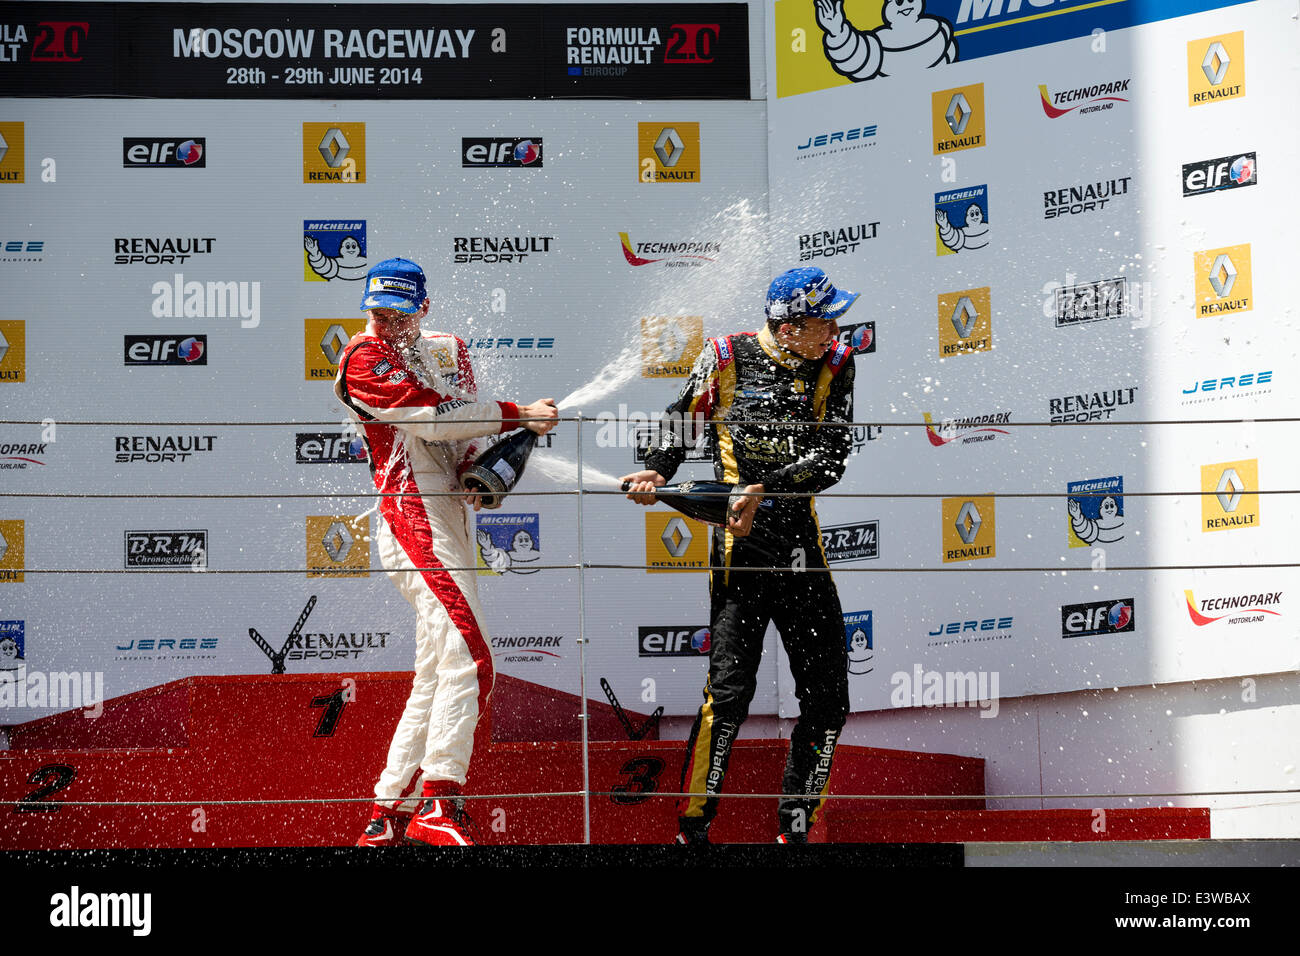 The World series by Renault Eurocup Formula Renault 2.0 and 3.5 in round on Moscow Raceway on 29 of June 2014, Russia - Stock Image